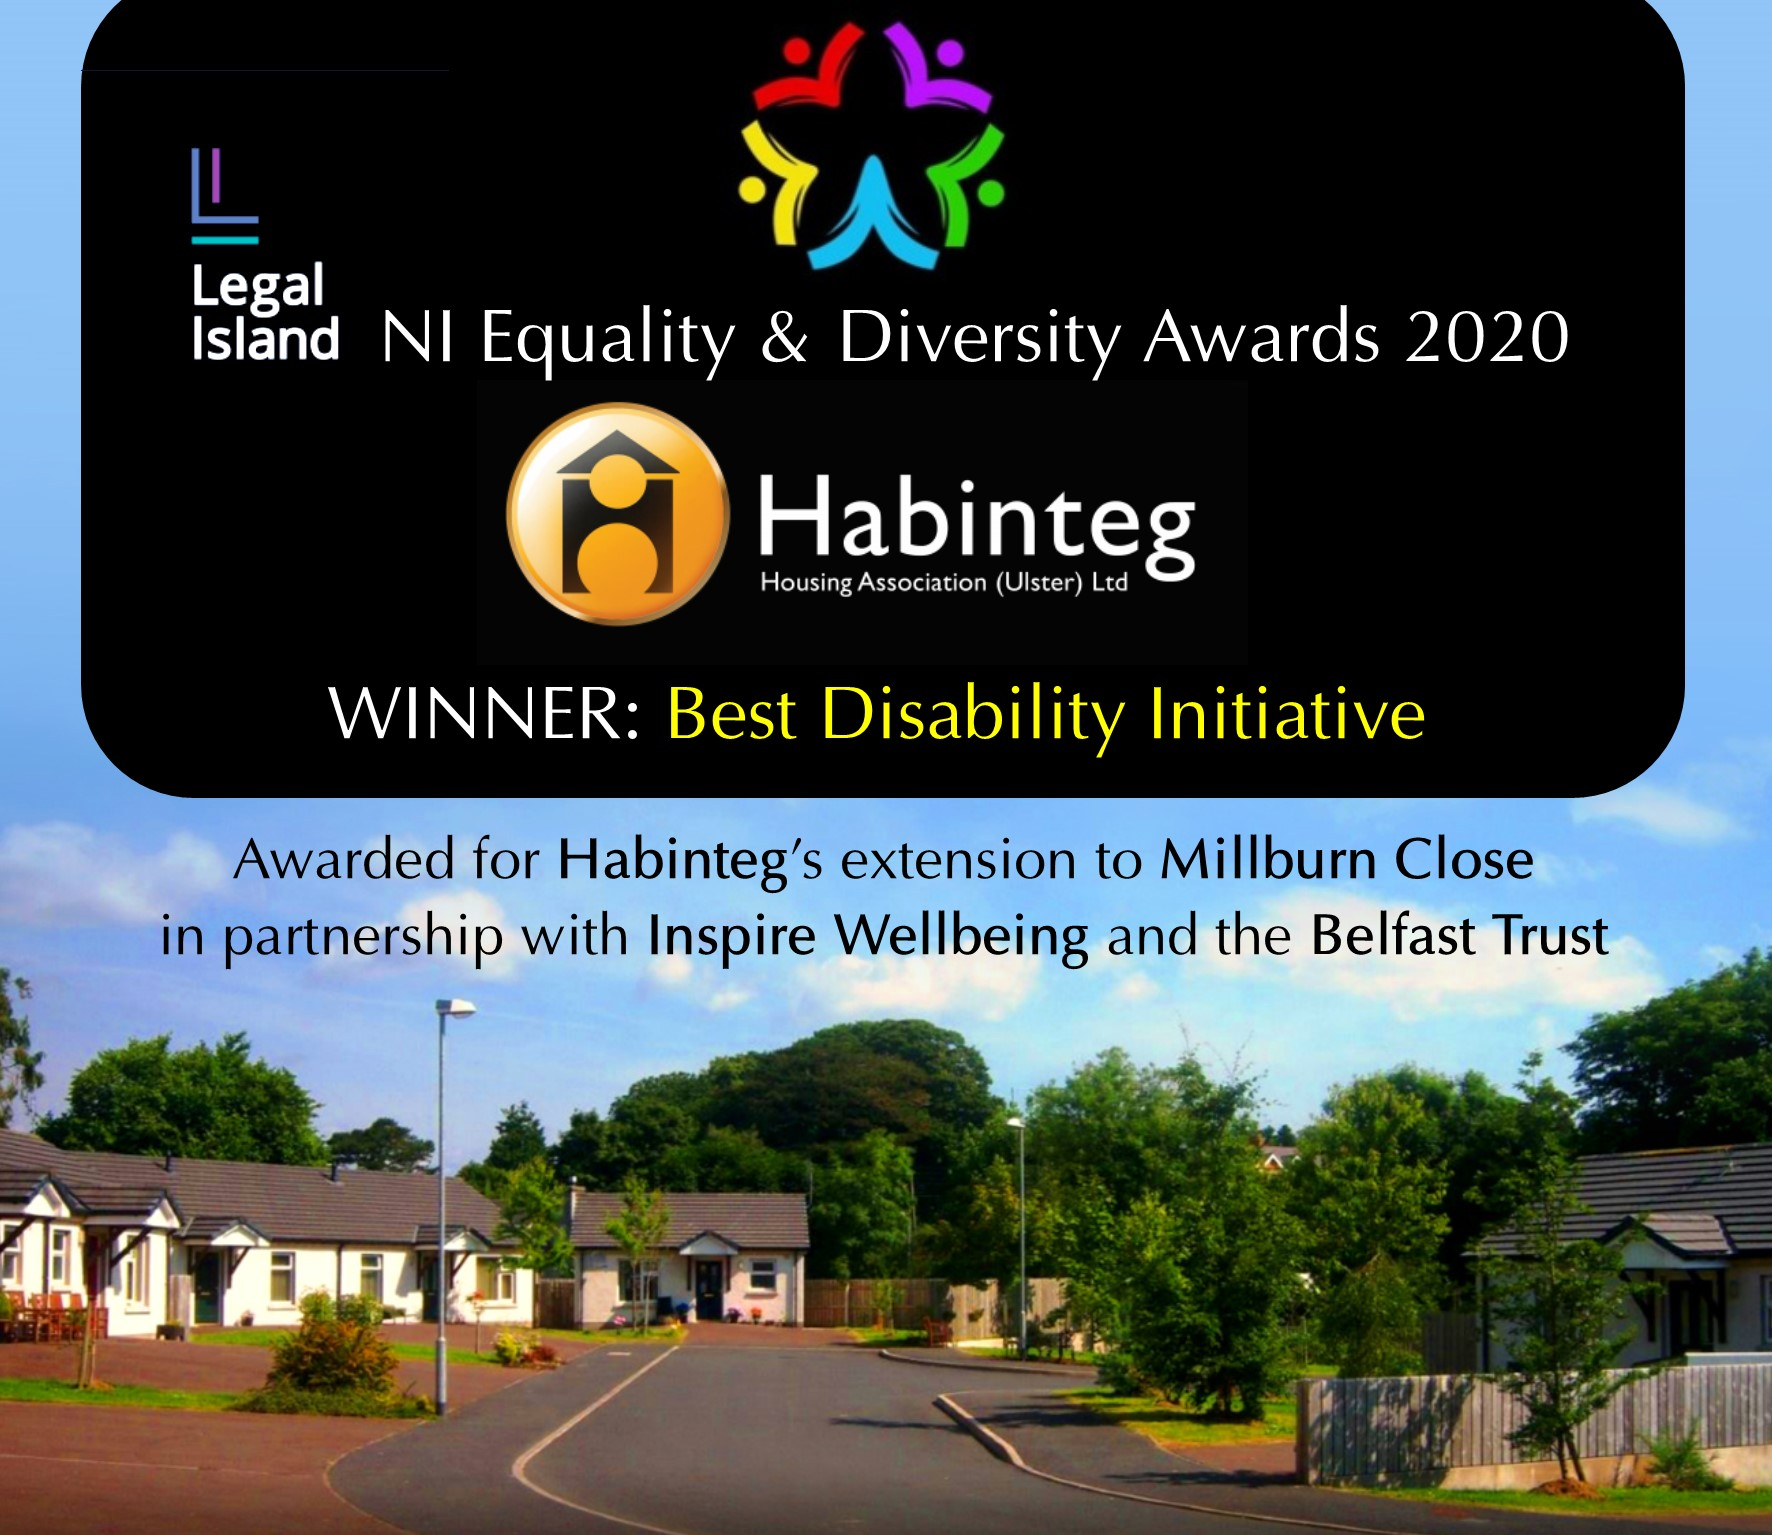 Habinteg winner of Best Disability Initiative at NI Equality and Diversity